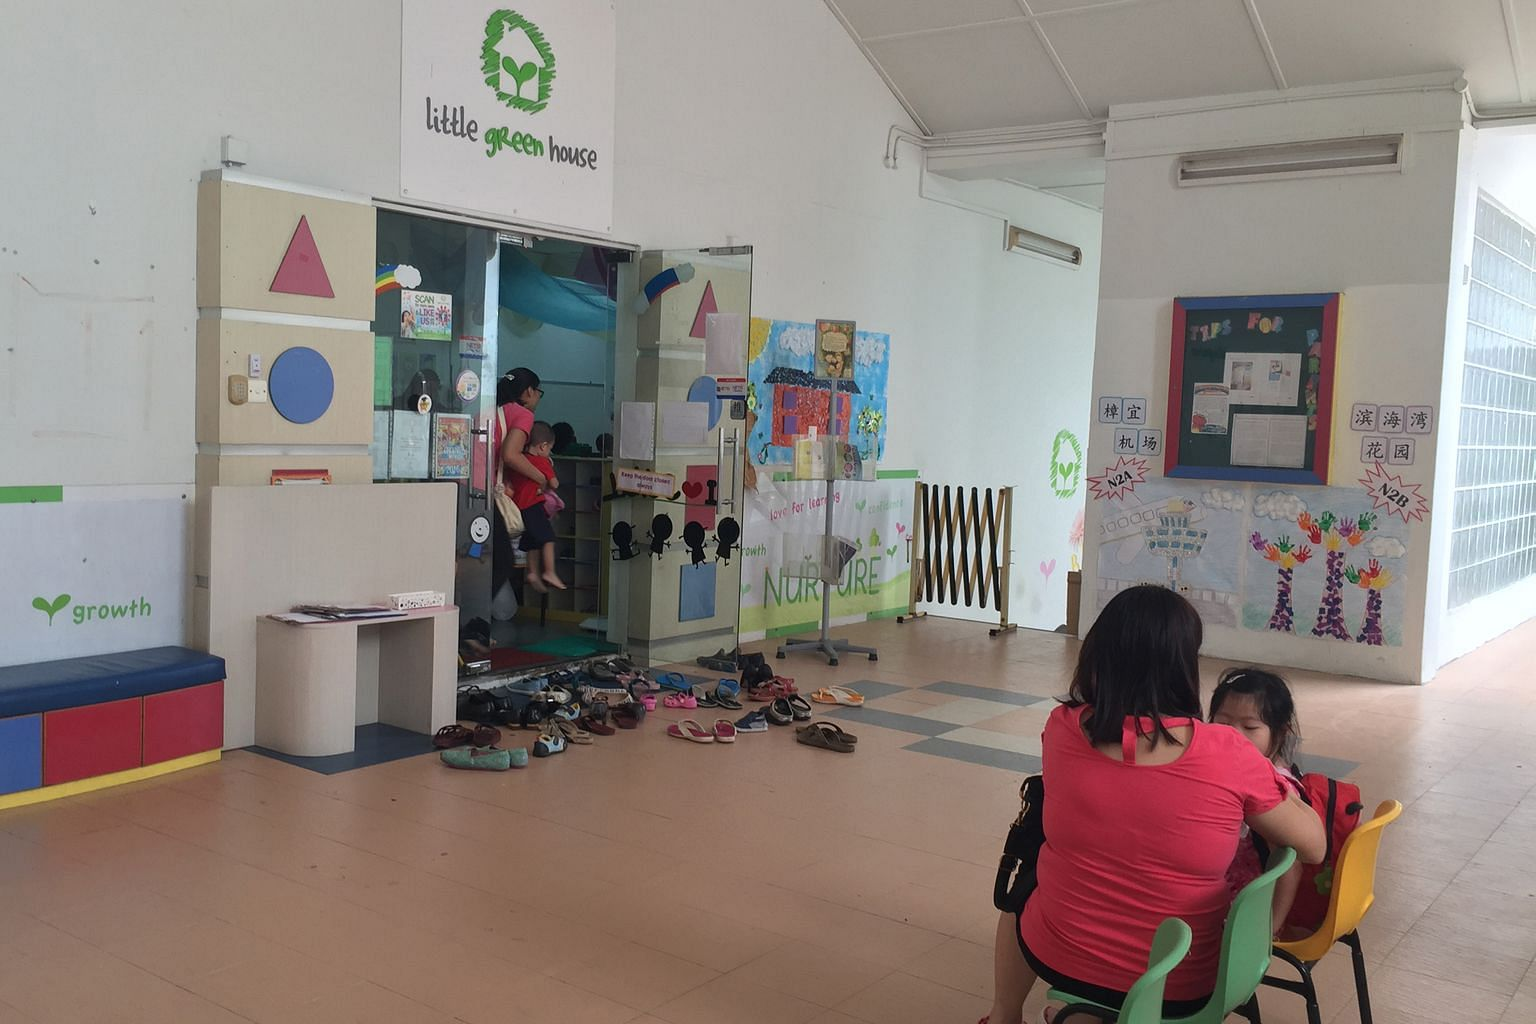 A total of 24 children and 20 employees of Little Greenhouse were screened yesterday. An earlier batch of 80 kids were tested on Wednesday. Results are expected in two weeks.